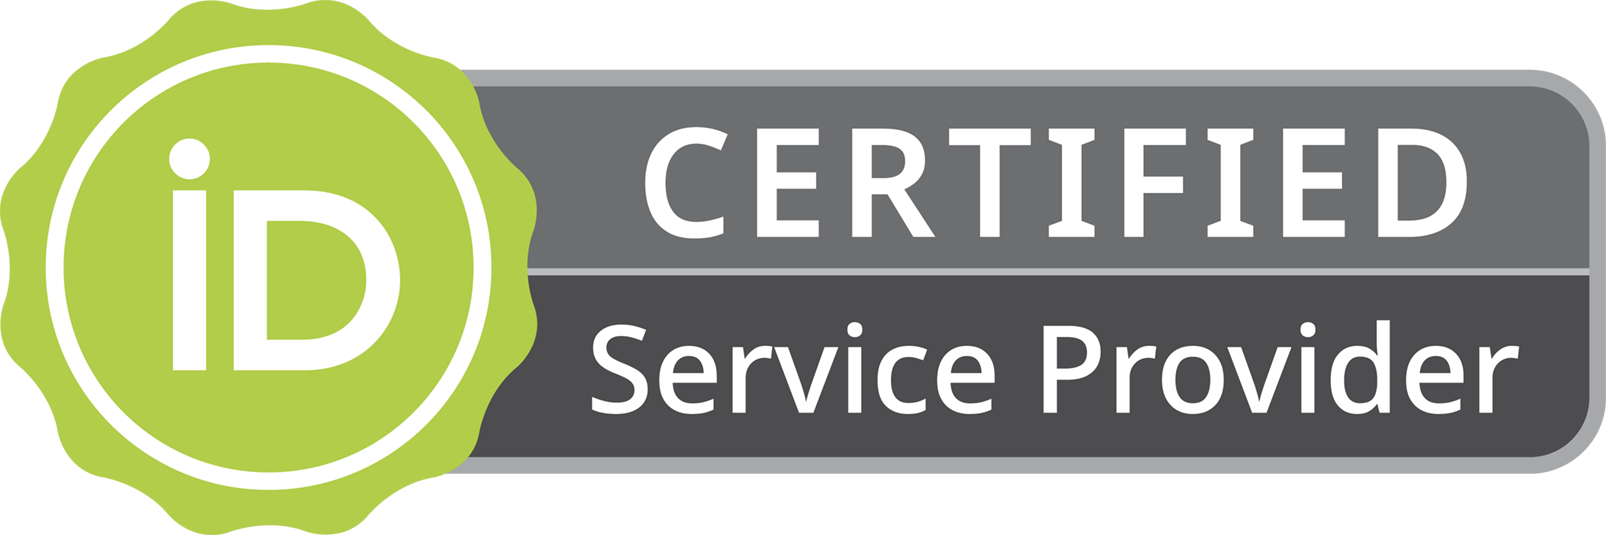 Certified ORCID Service Provider